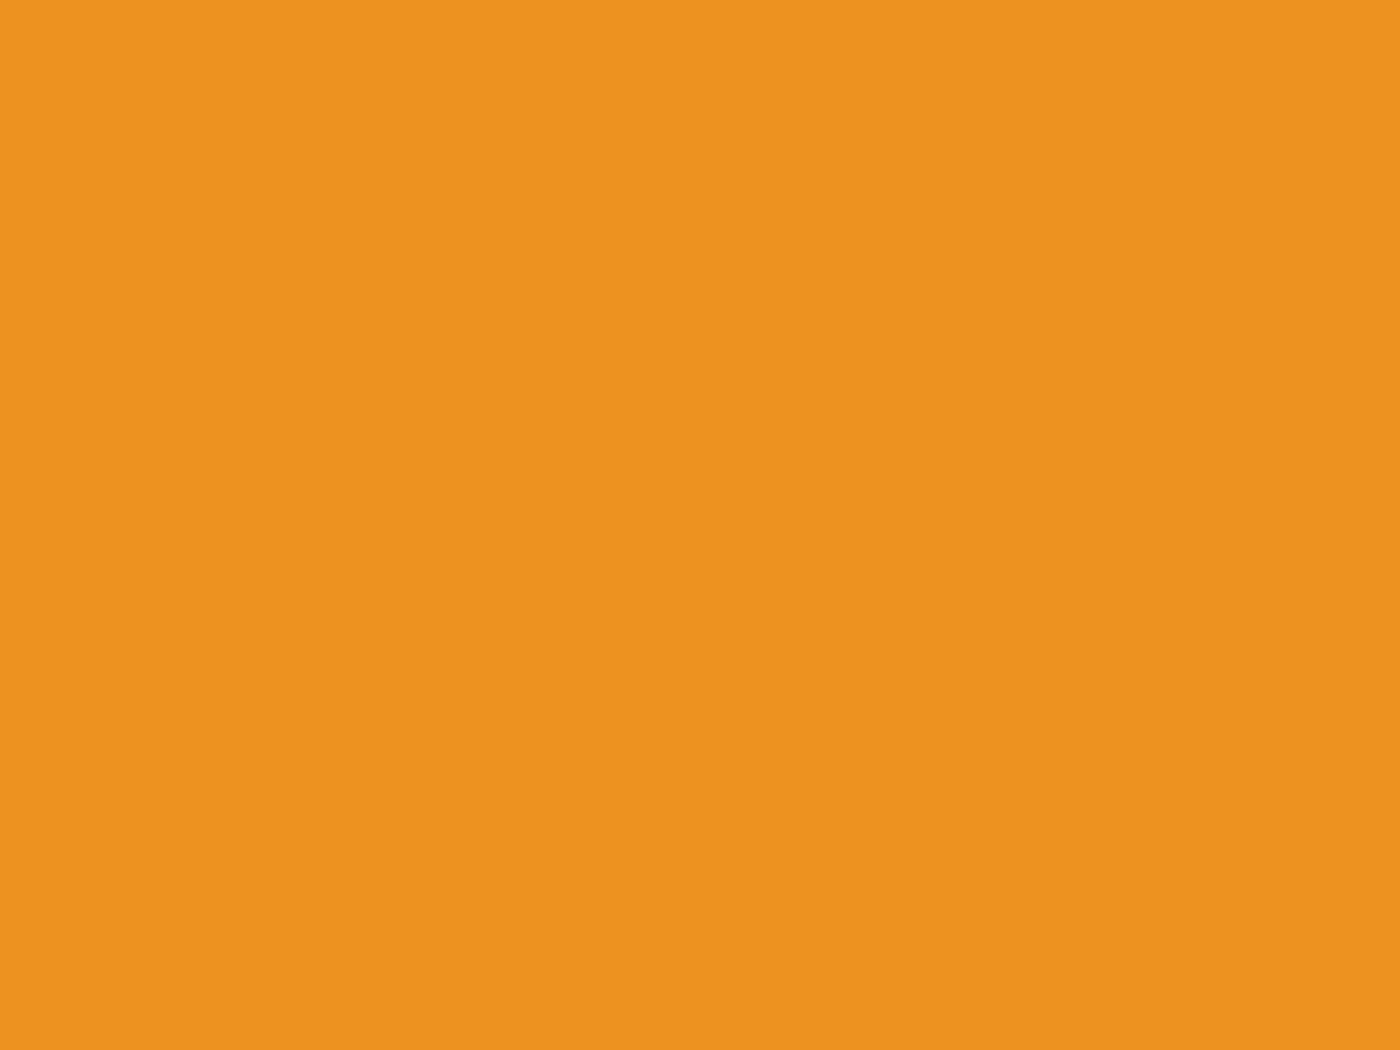 1400x1050 Carrot Orange Solid Color Background